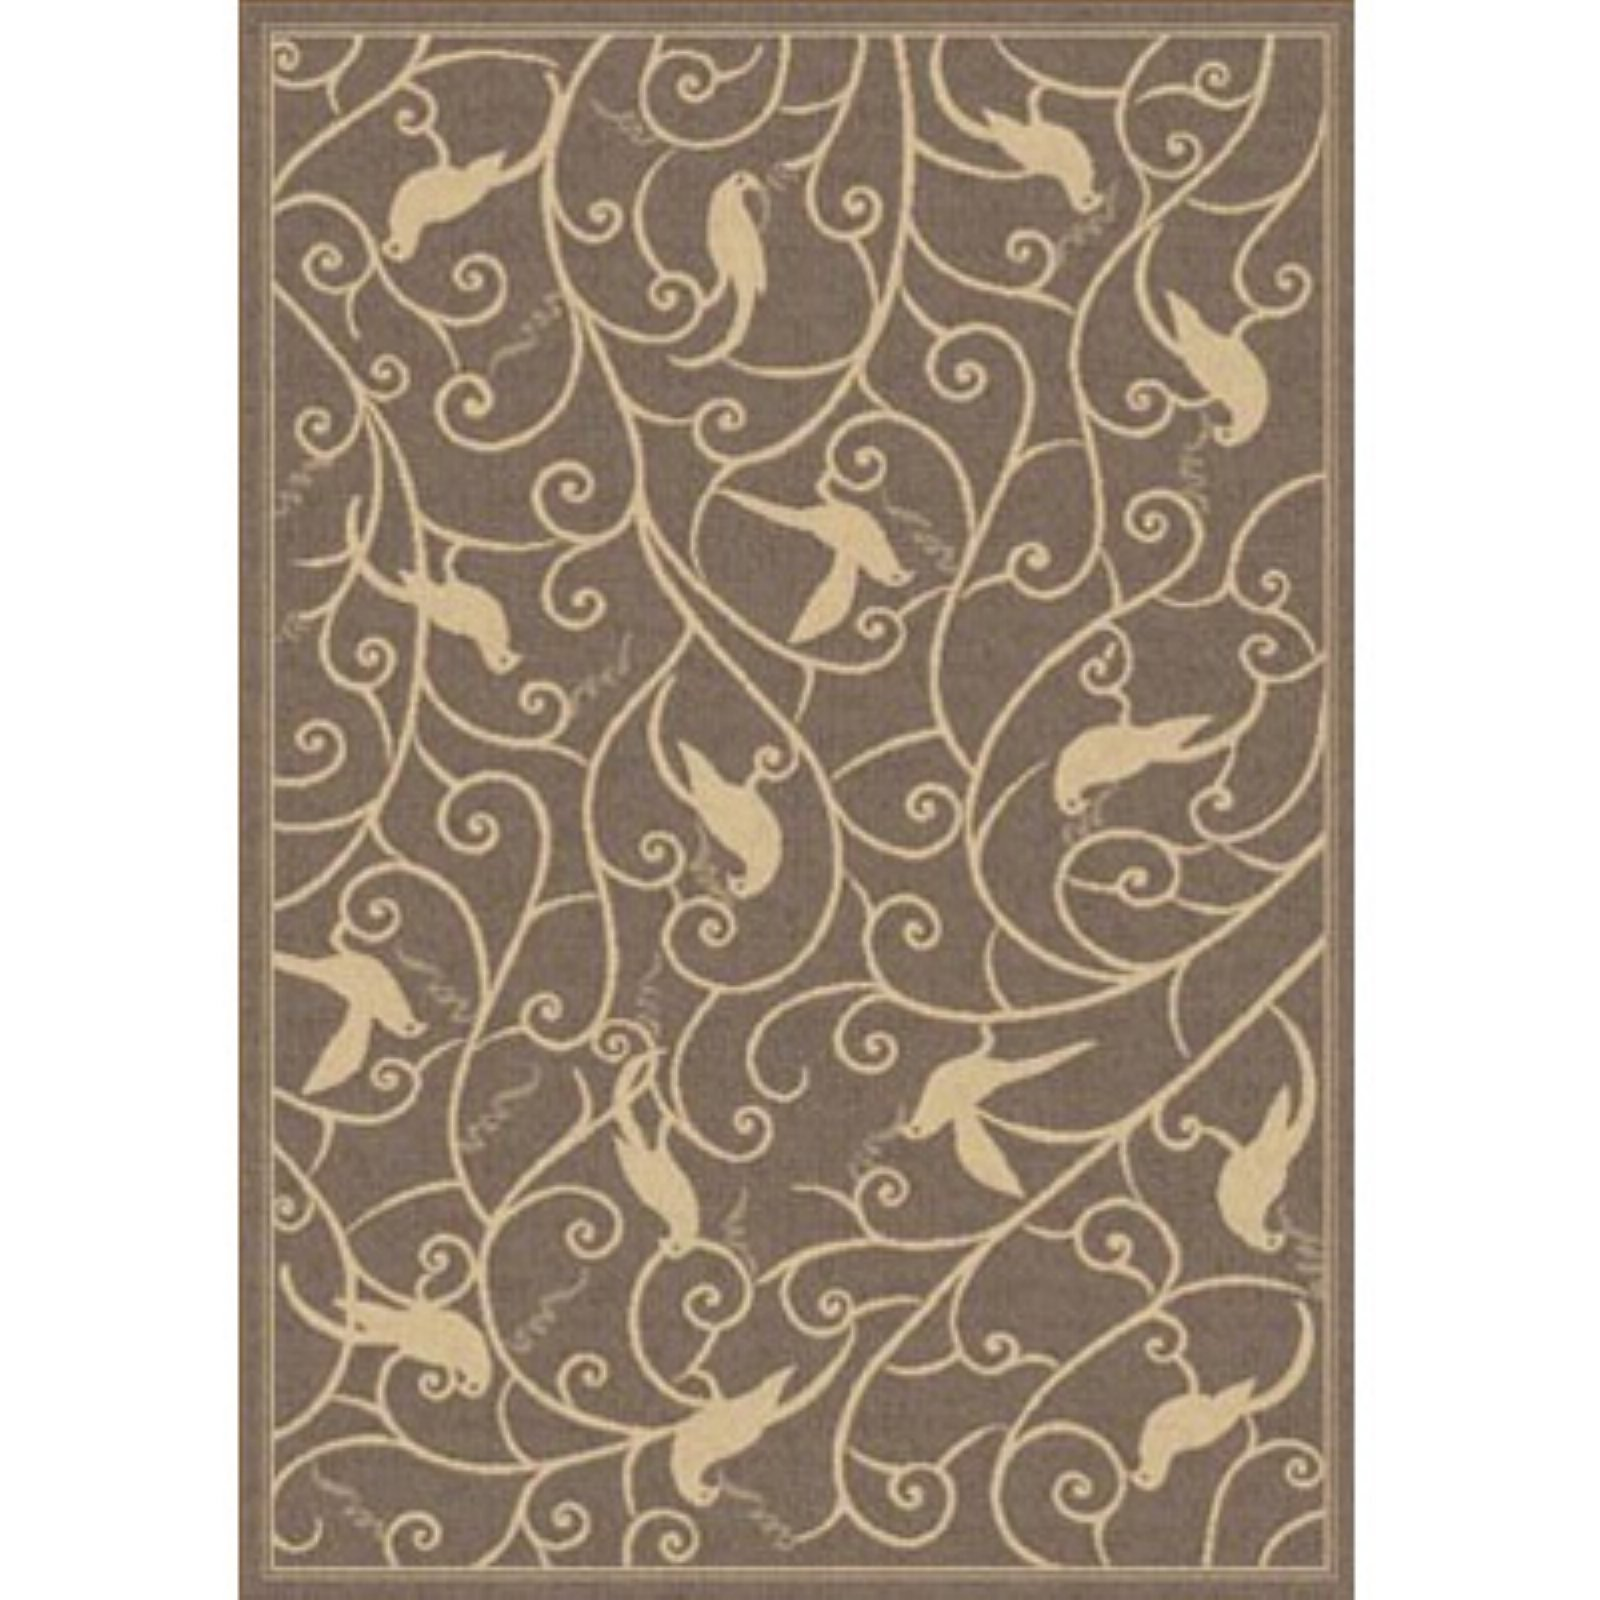 Dynamic Rugs Piazza Partridge Indoor/Outdoor Area Rug - Brown